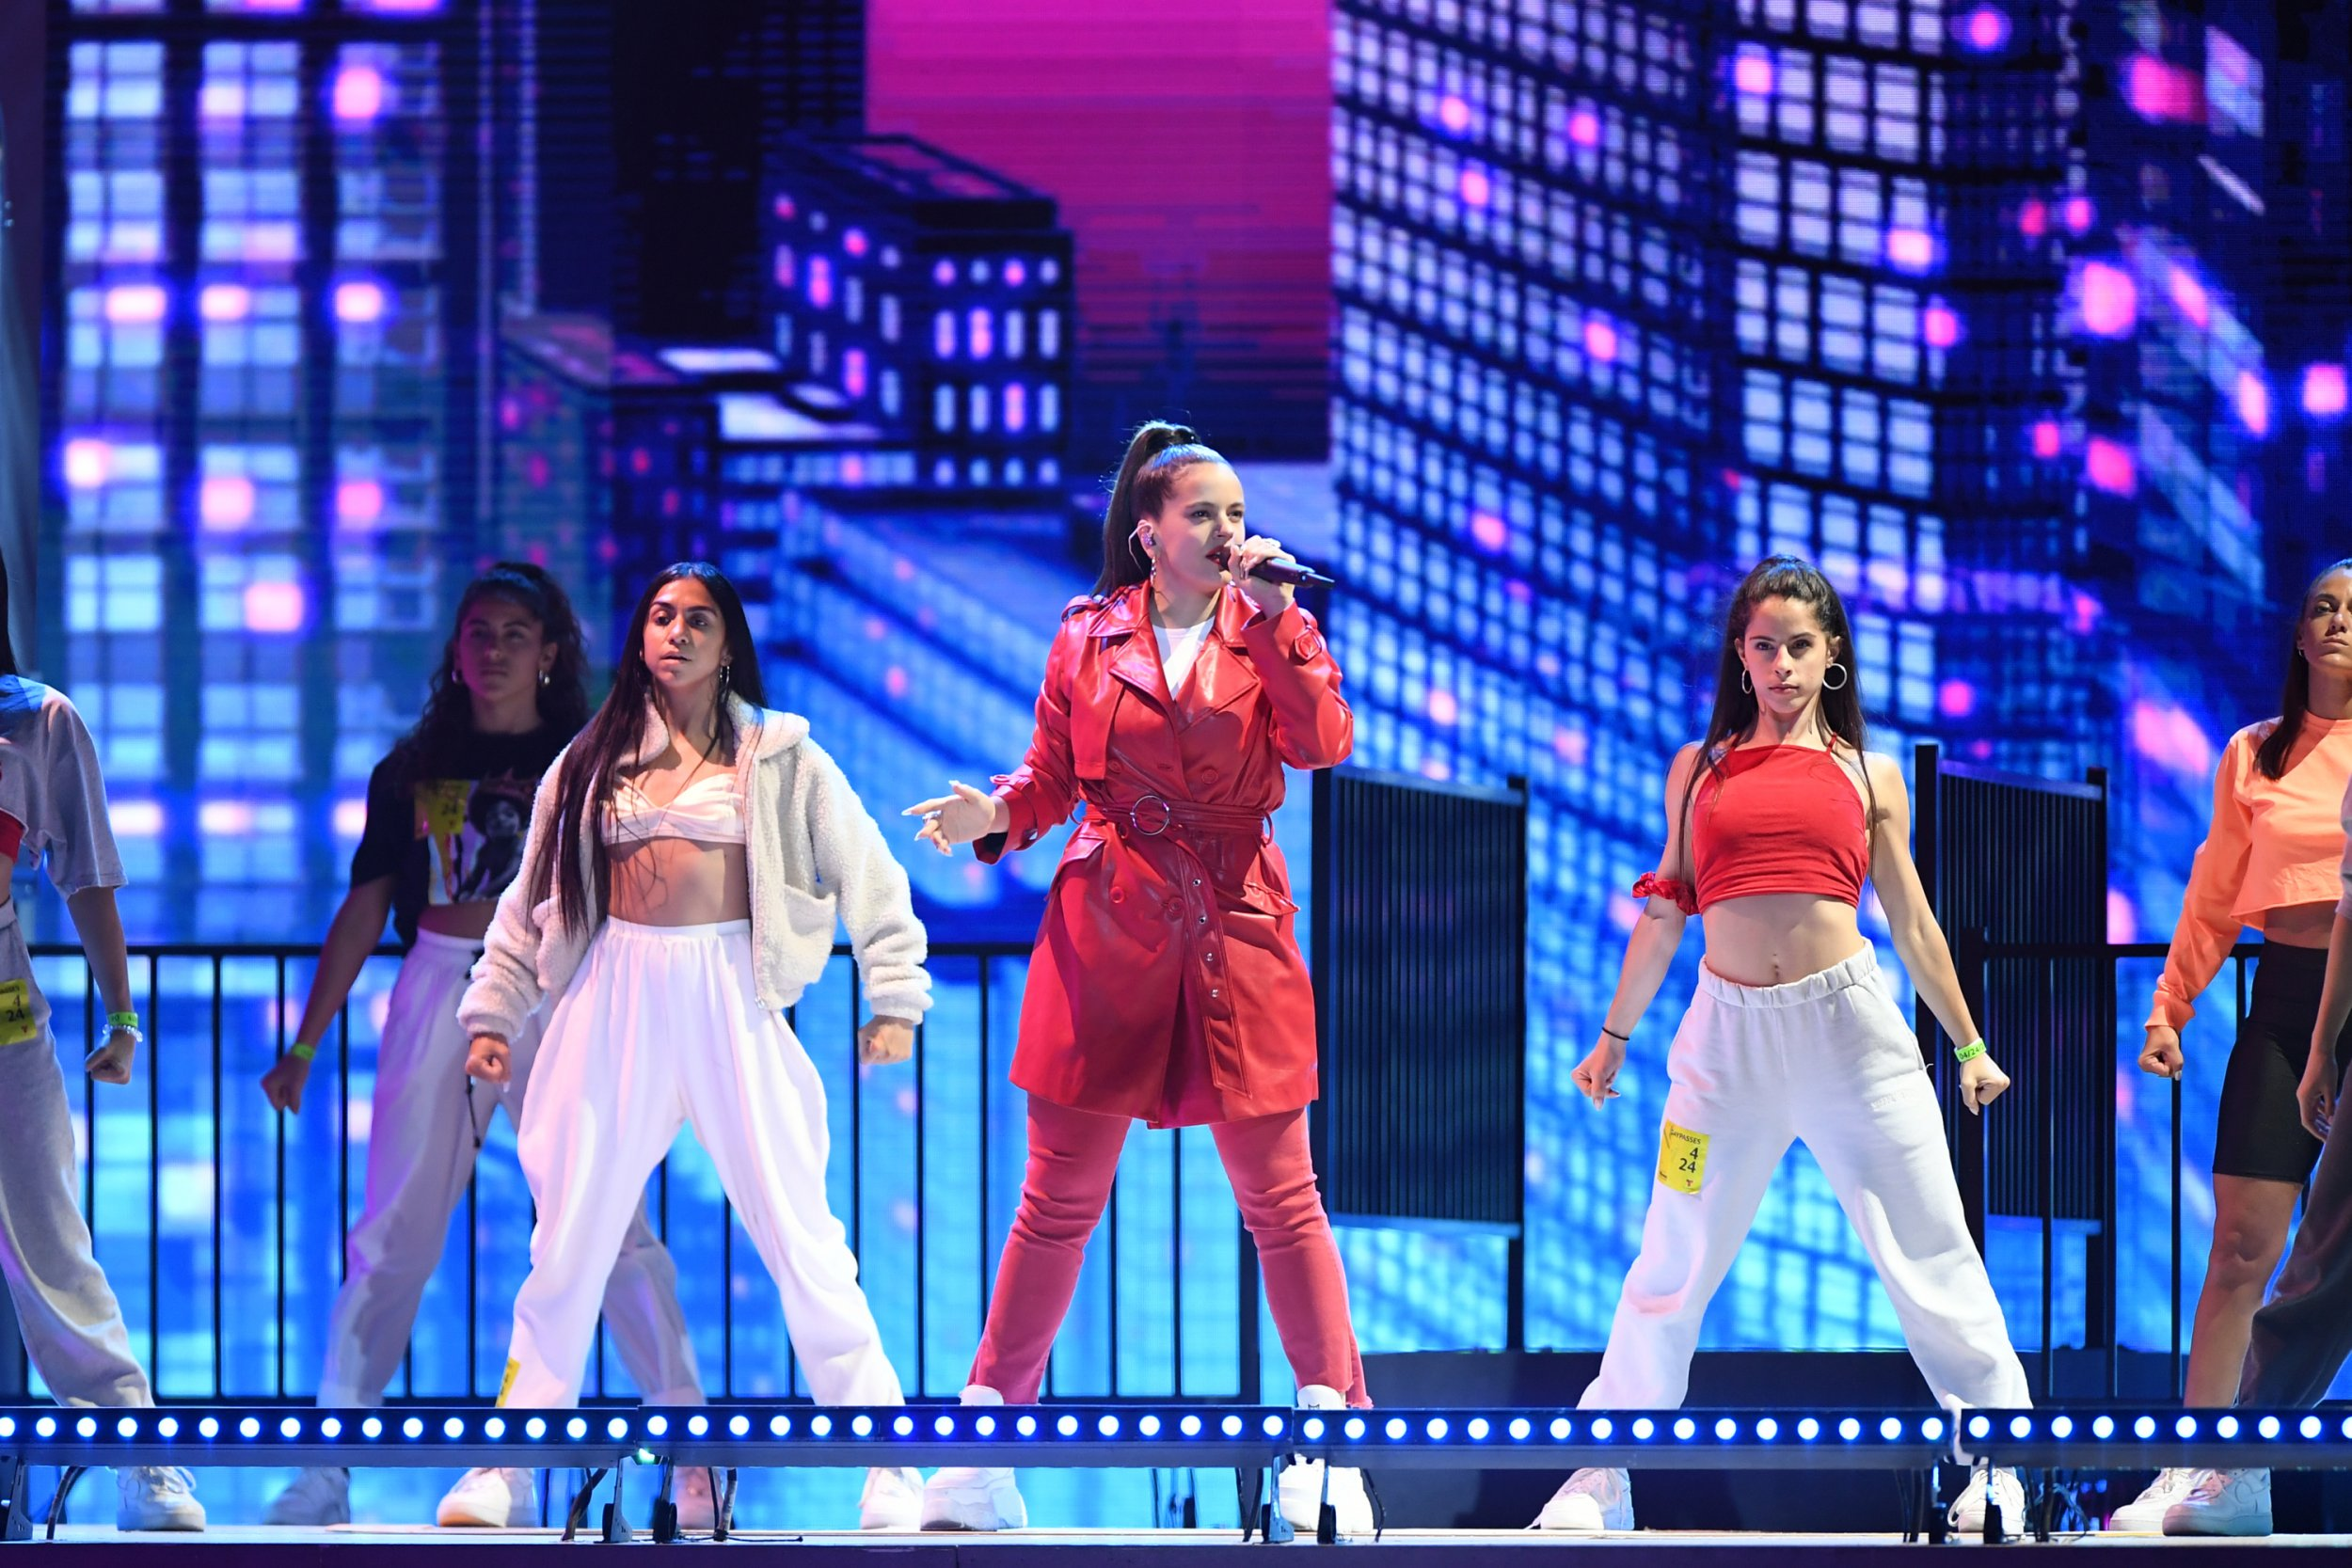 Rosalia at 2019 Latin Billboard Awards